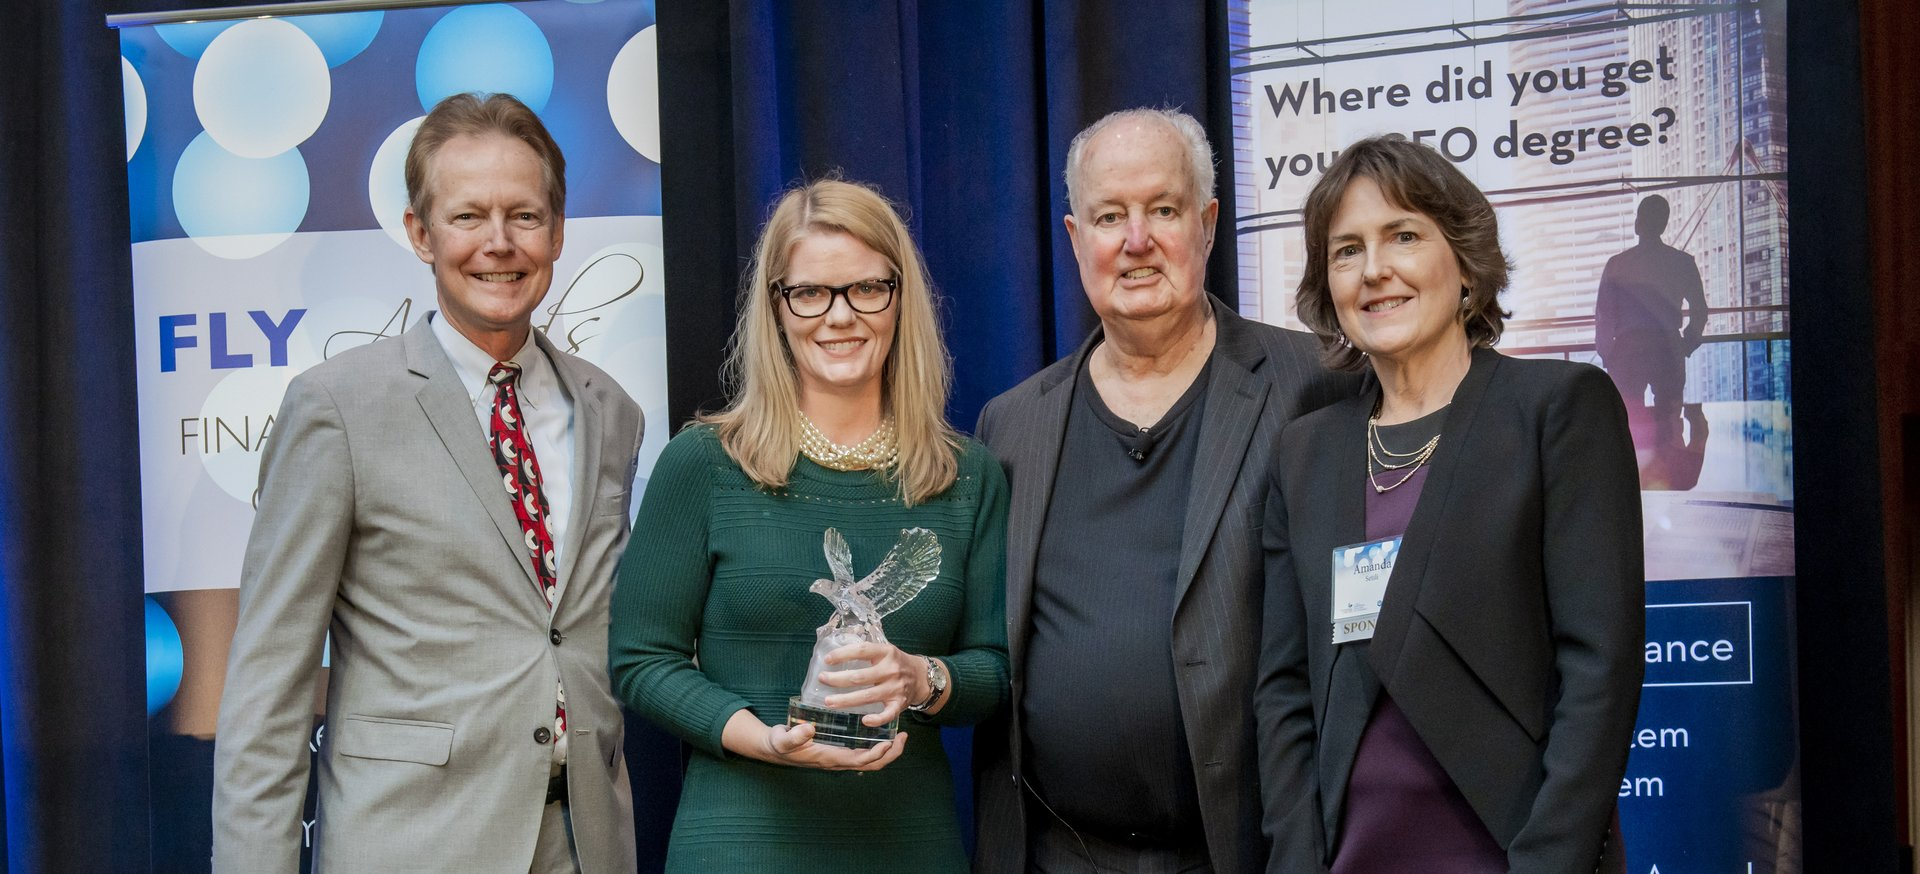 Dixie McCurley Wins 2019 Financial Leader of The Year Award — For Innovative Solutions in Finance